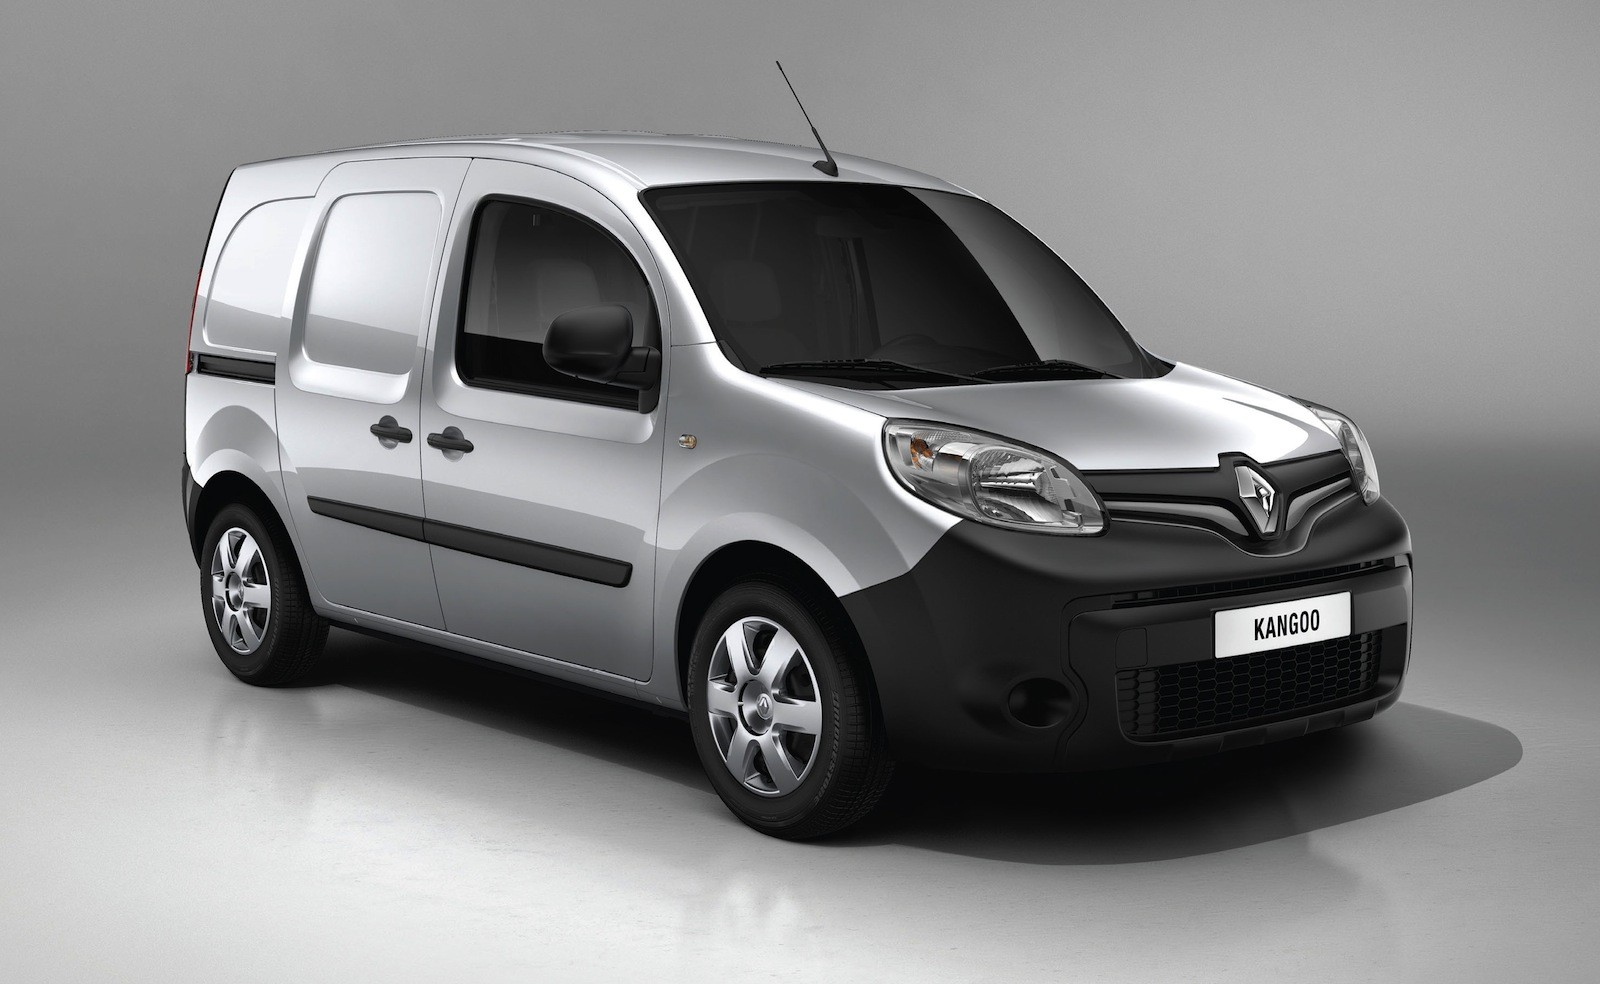 Renault Kangoo gets a facelift